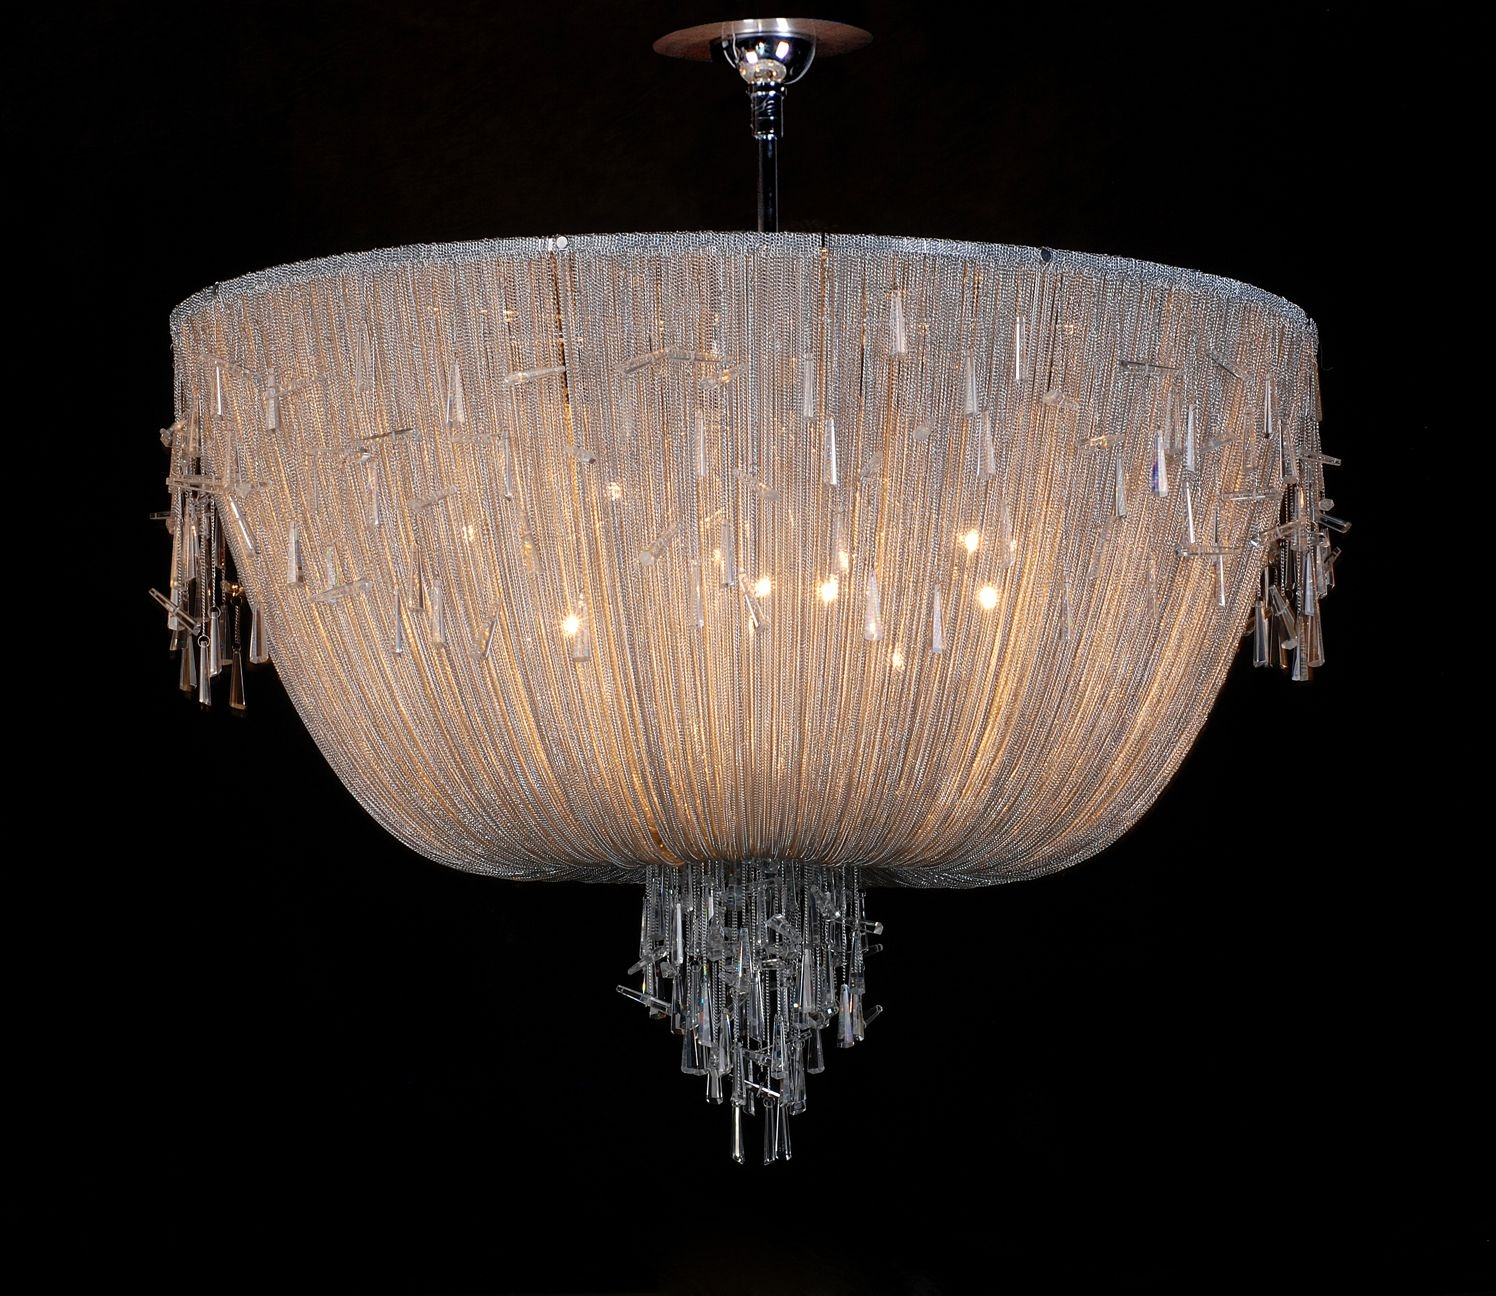 Home Bespoke Italian Chandeliers Hand Blown Glass Lighting With Regard To Italian Chandeliers (#2 of 12)